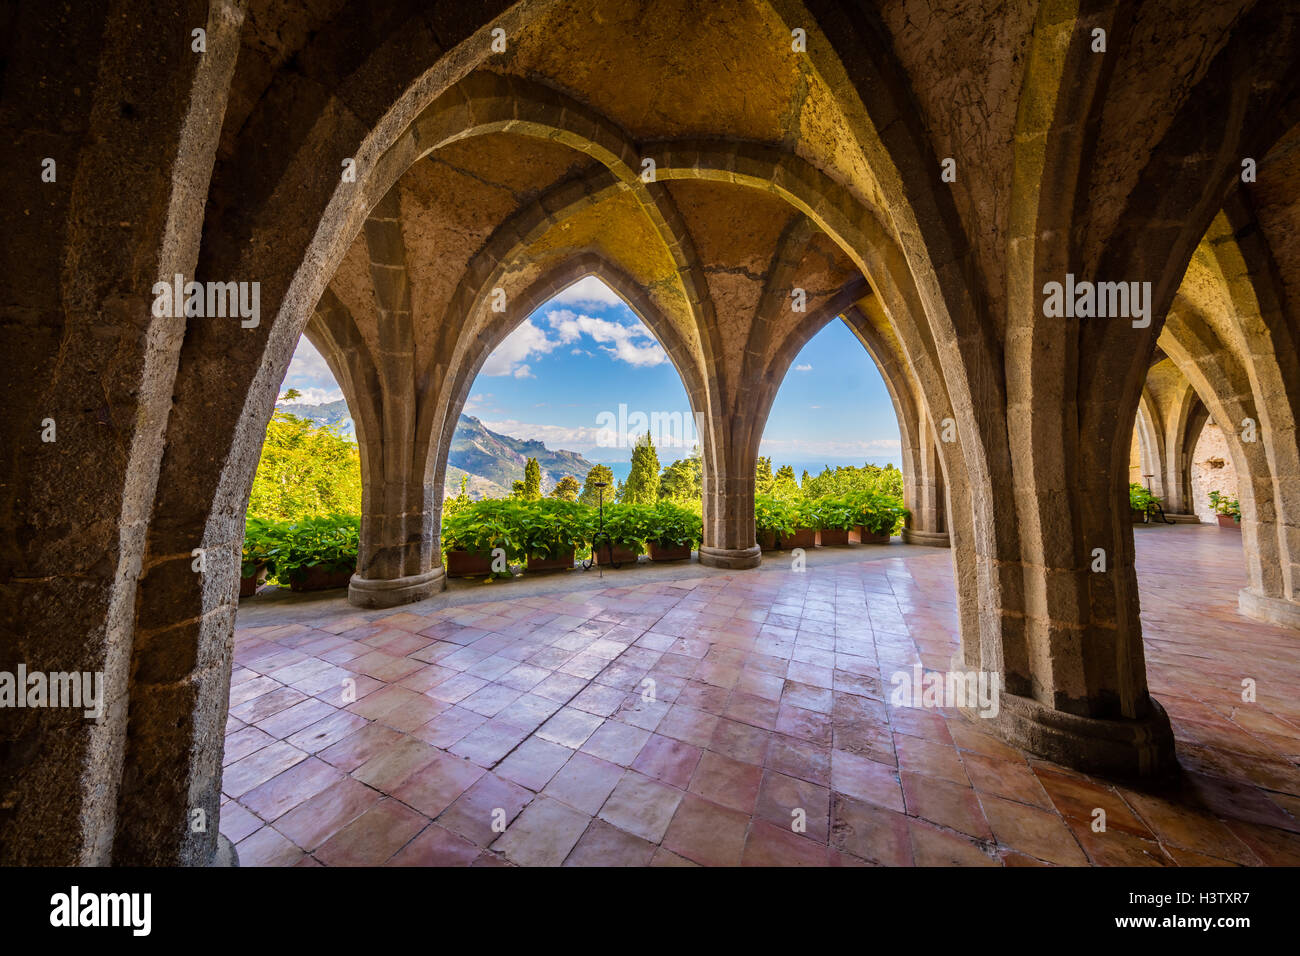 Villa Cimbrone is a historic building in Ravello, on the Amalfi coast of southern Italy. - Stock Image